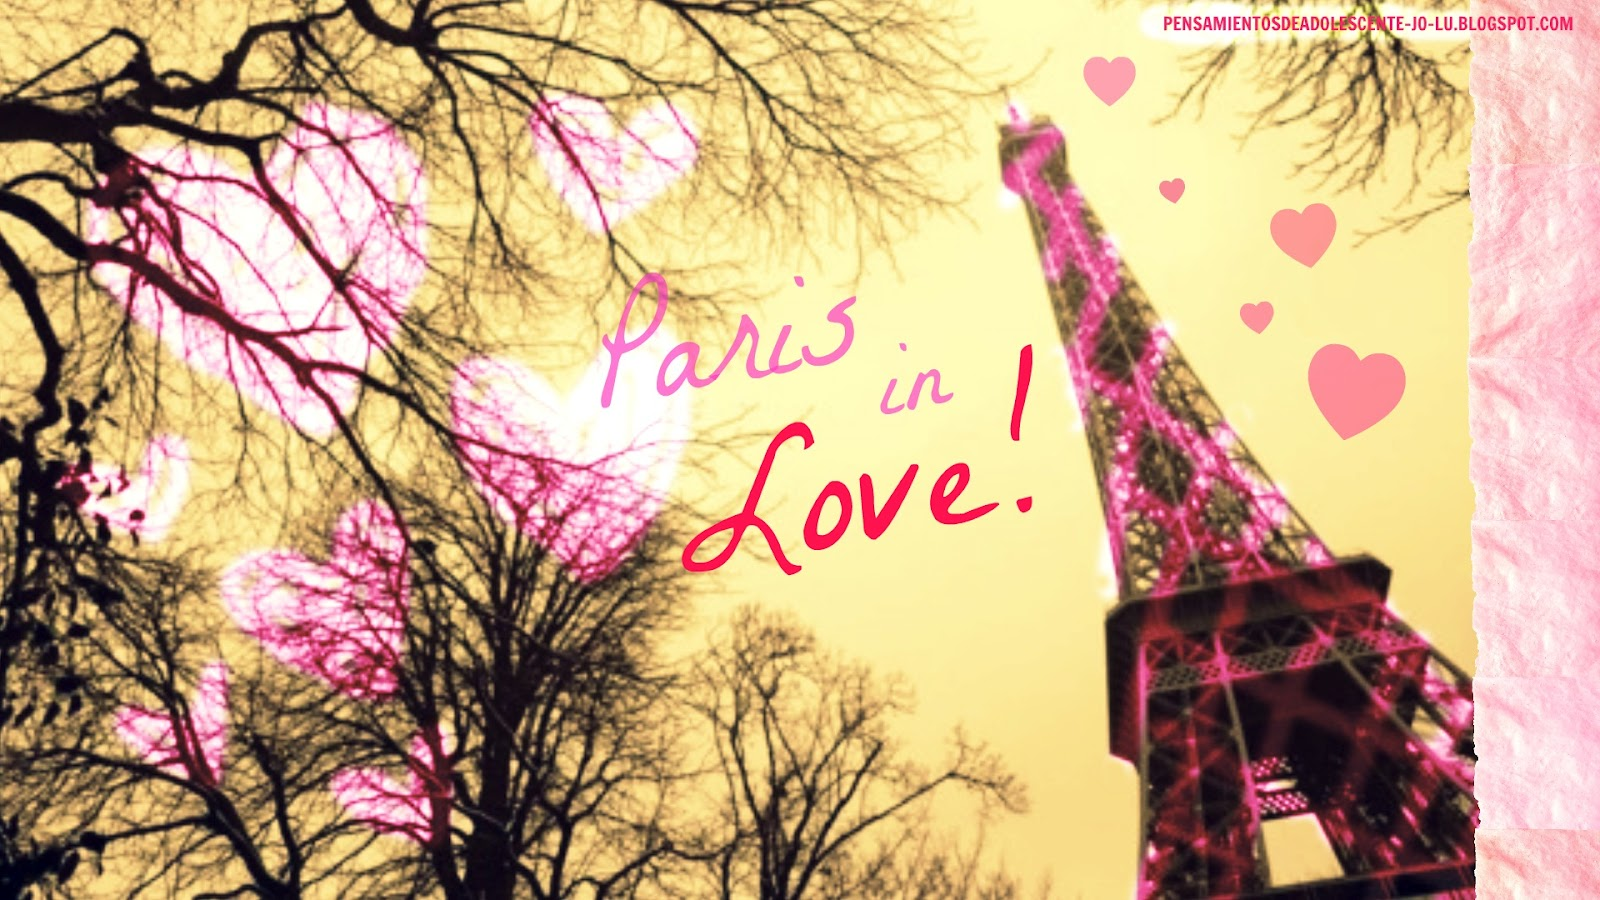 Wallpaper paris cute